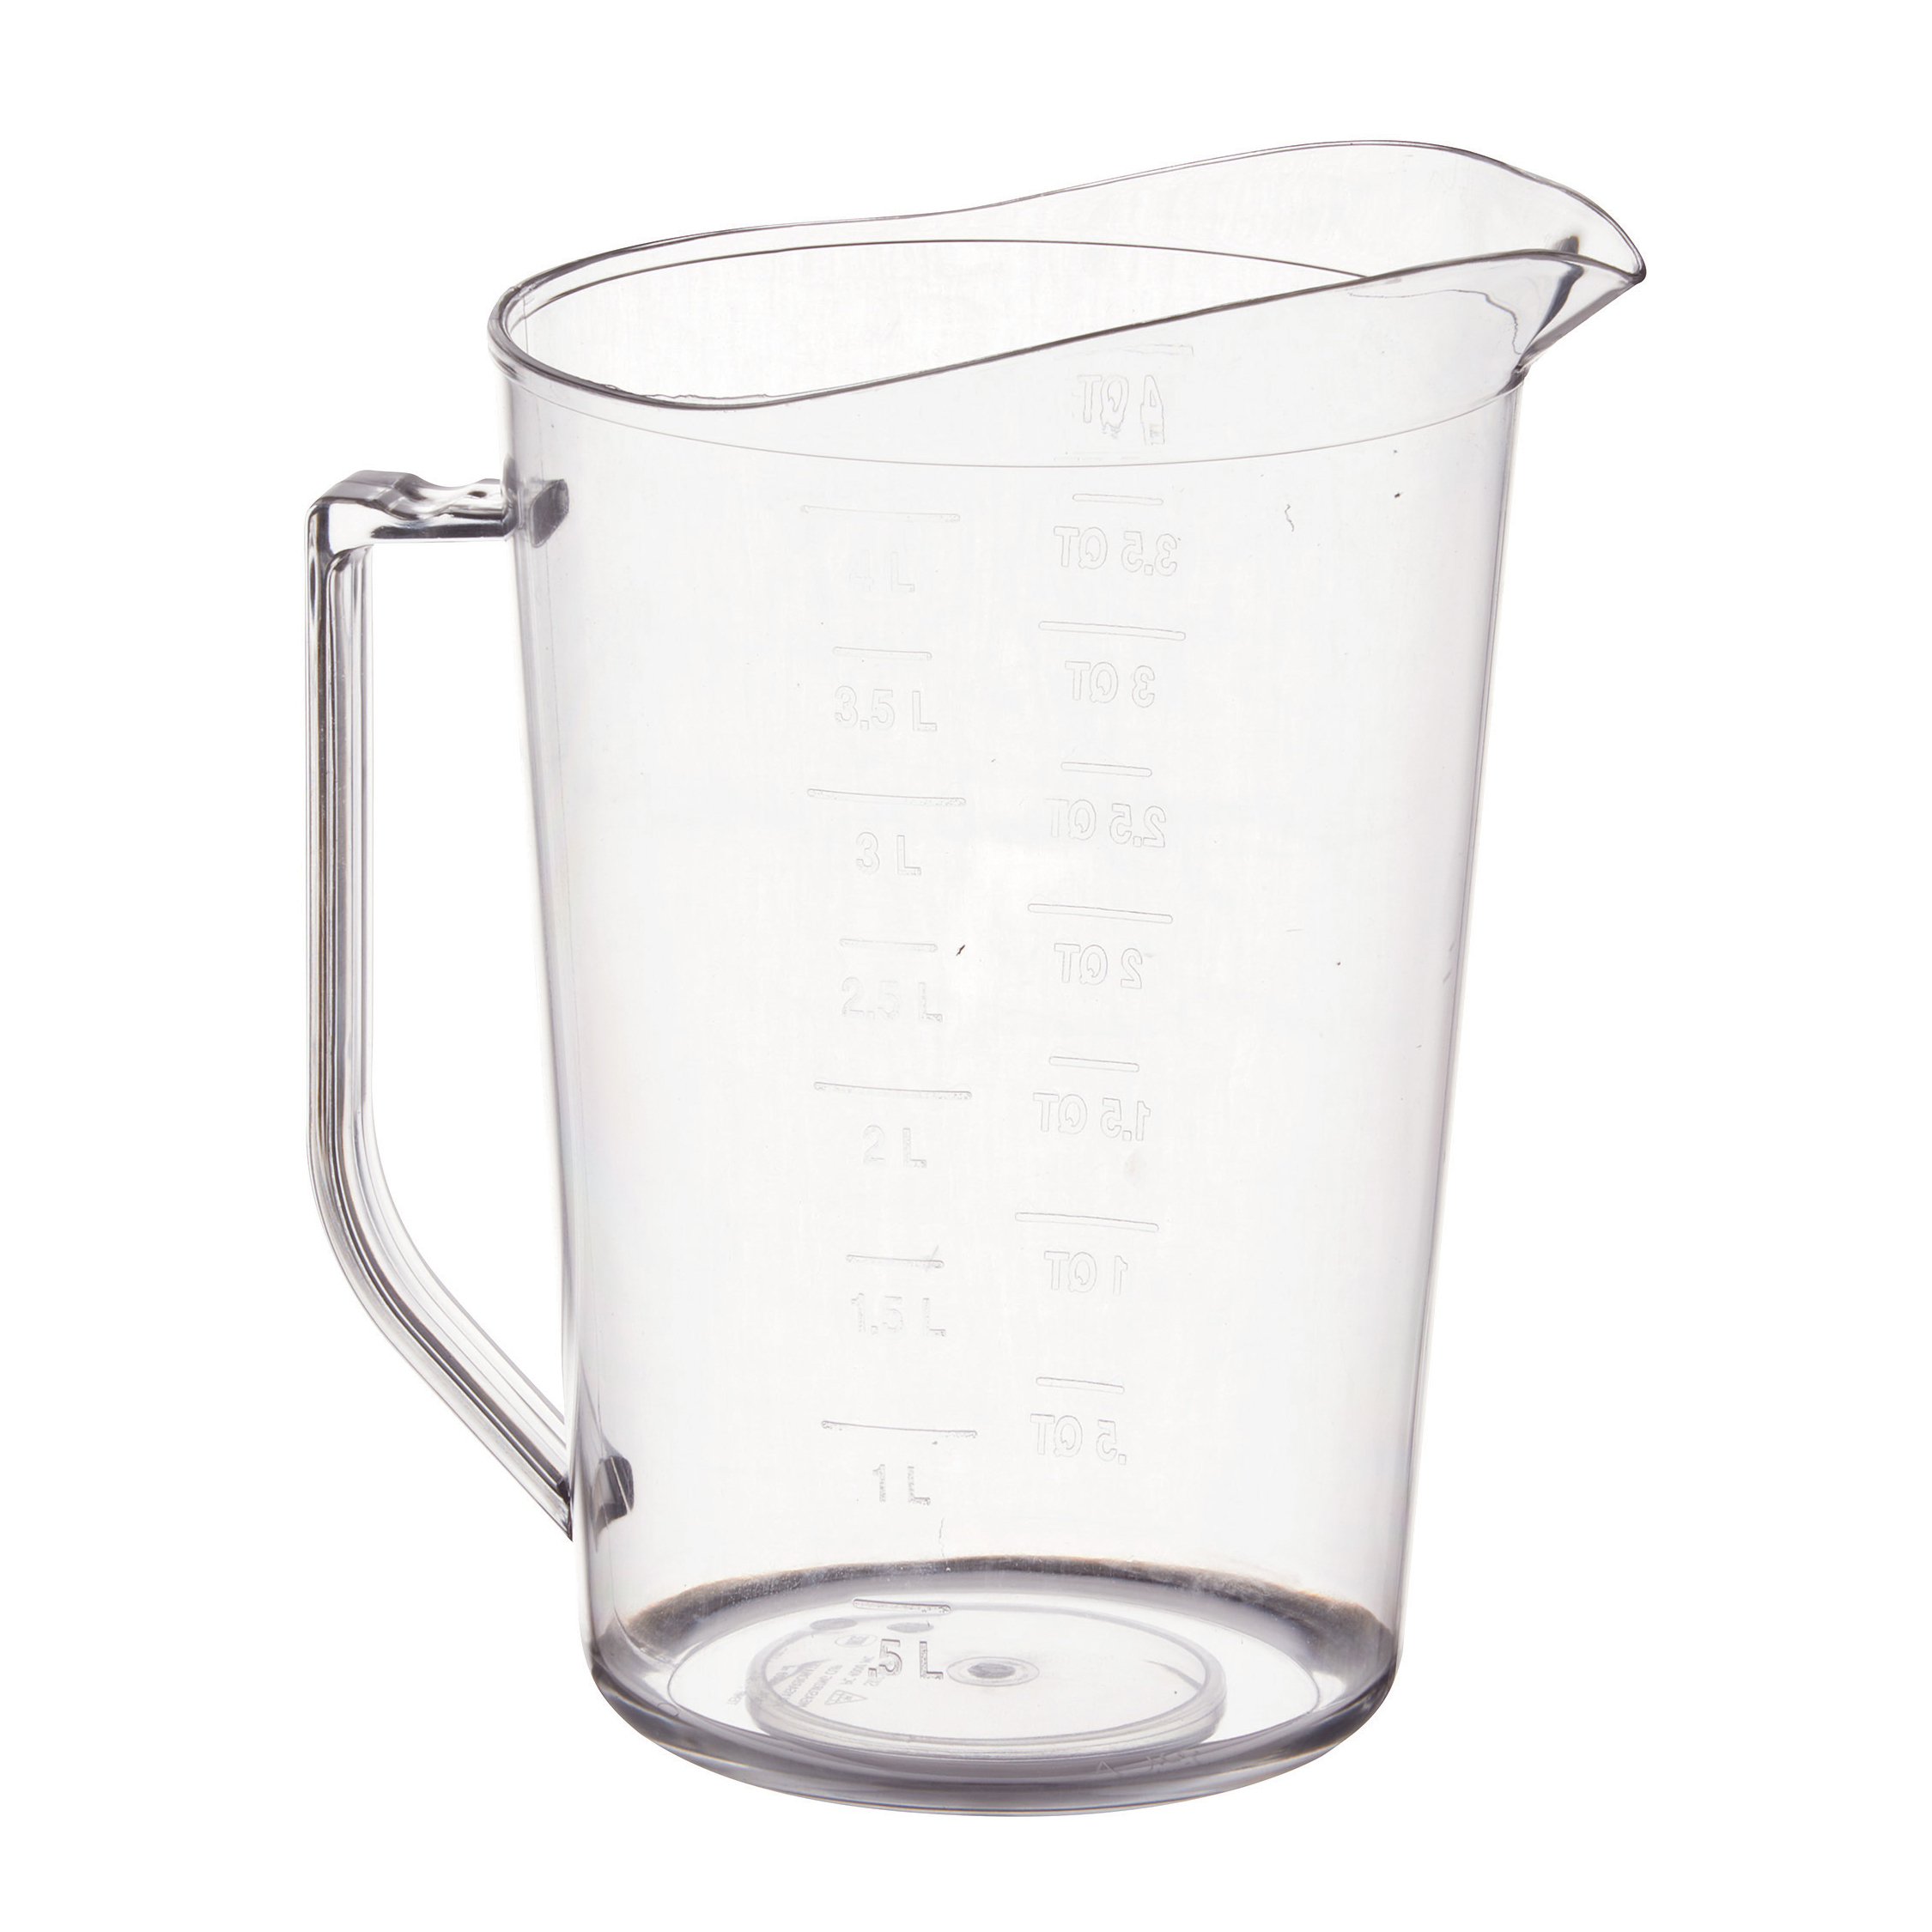 Winco PMU-400 measuring cups